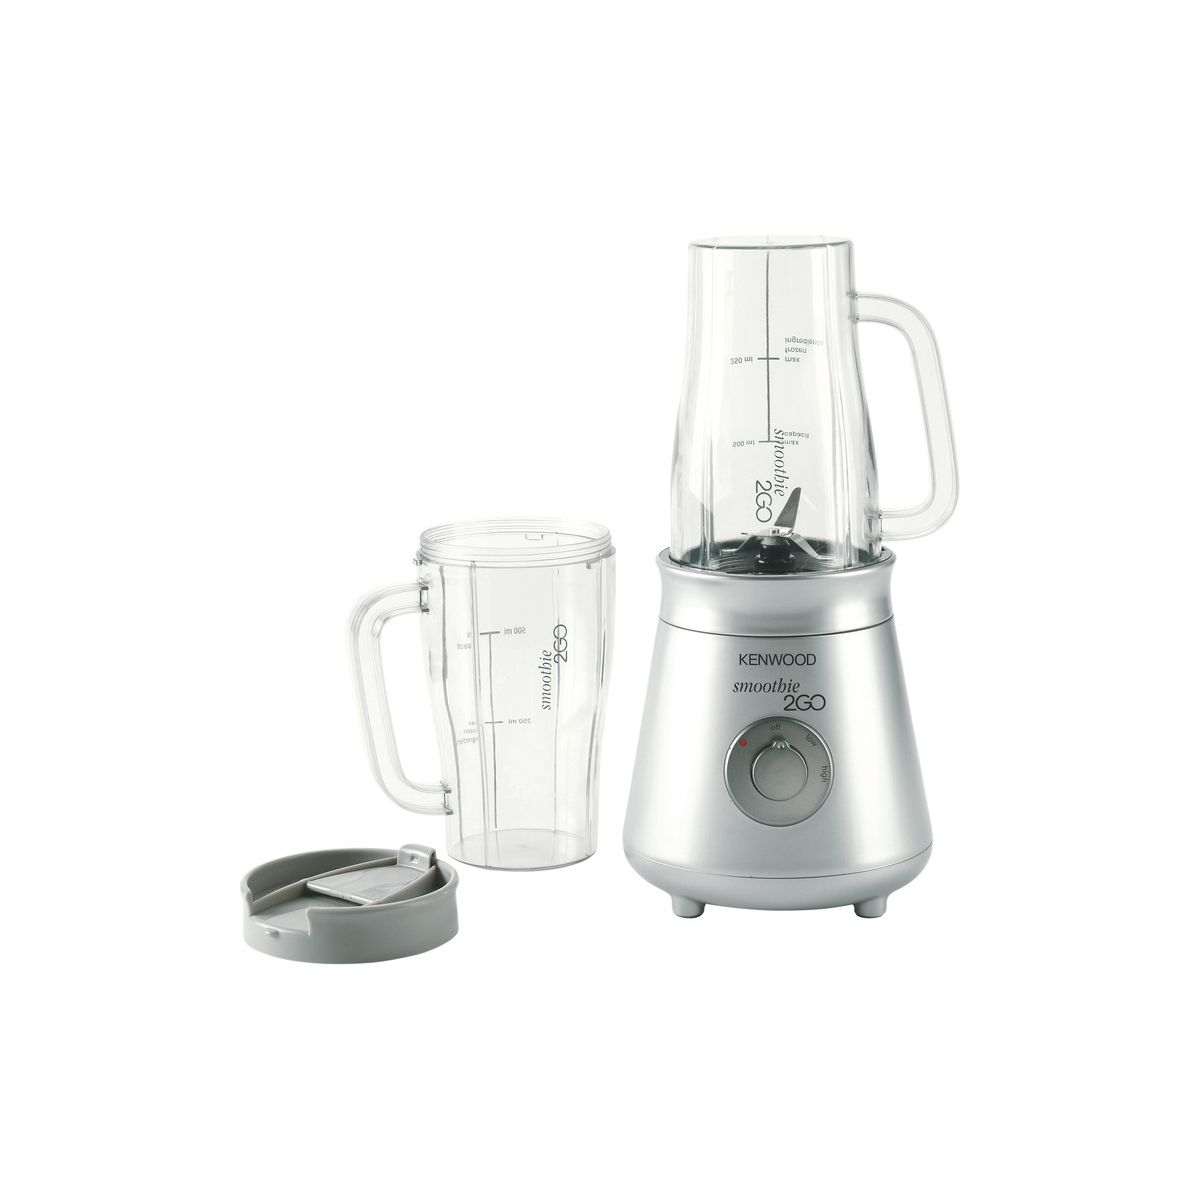 kenwood sb055 blender smoothie 2go comparer avec. Black Bedroom Furniture Sets. Home Design Ideas